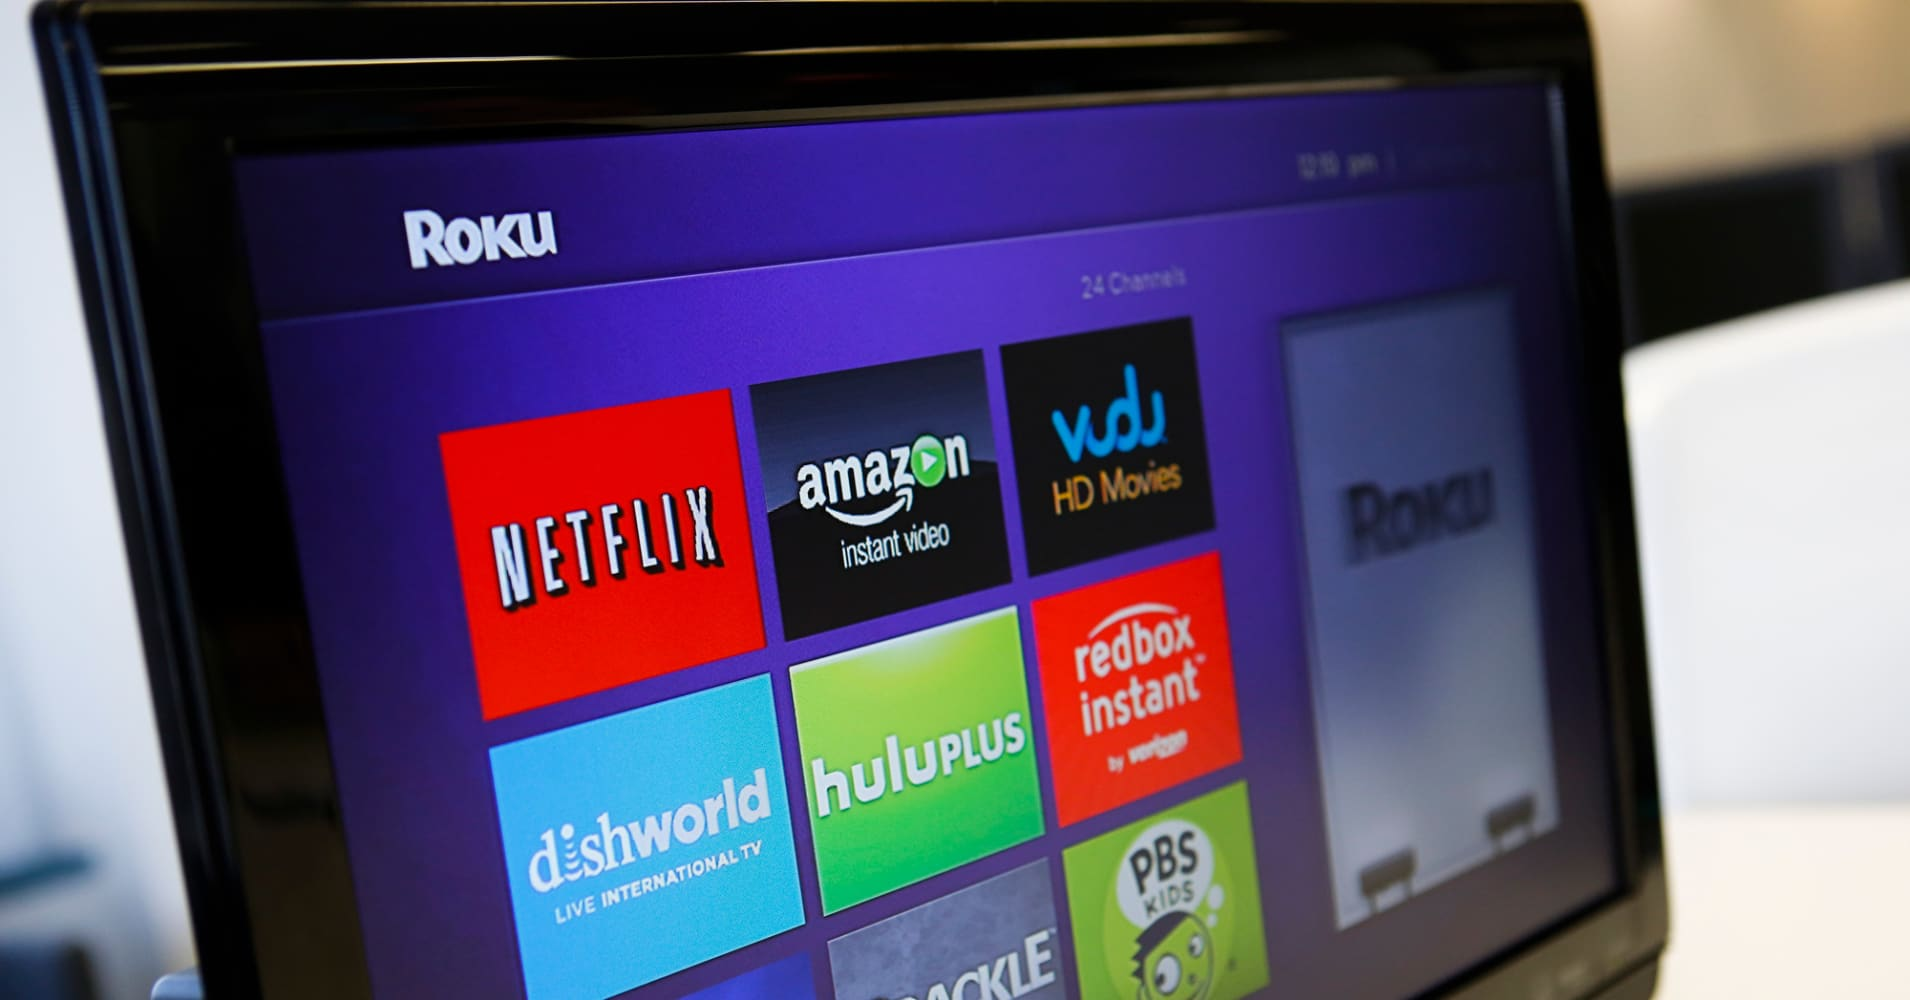 Buy Roku on the dip: 'Exceptional platform' to drive double-digit upside, says analyst